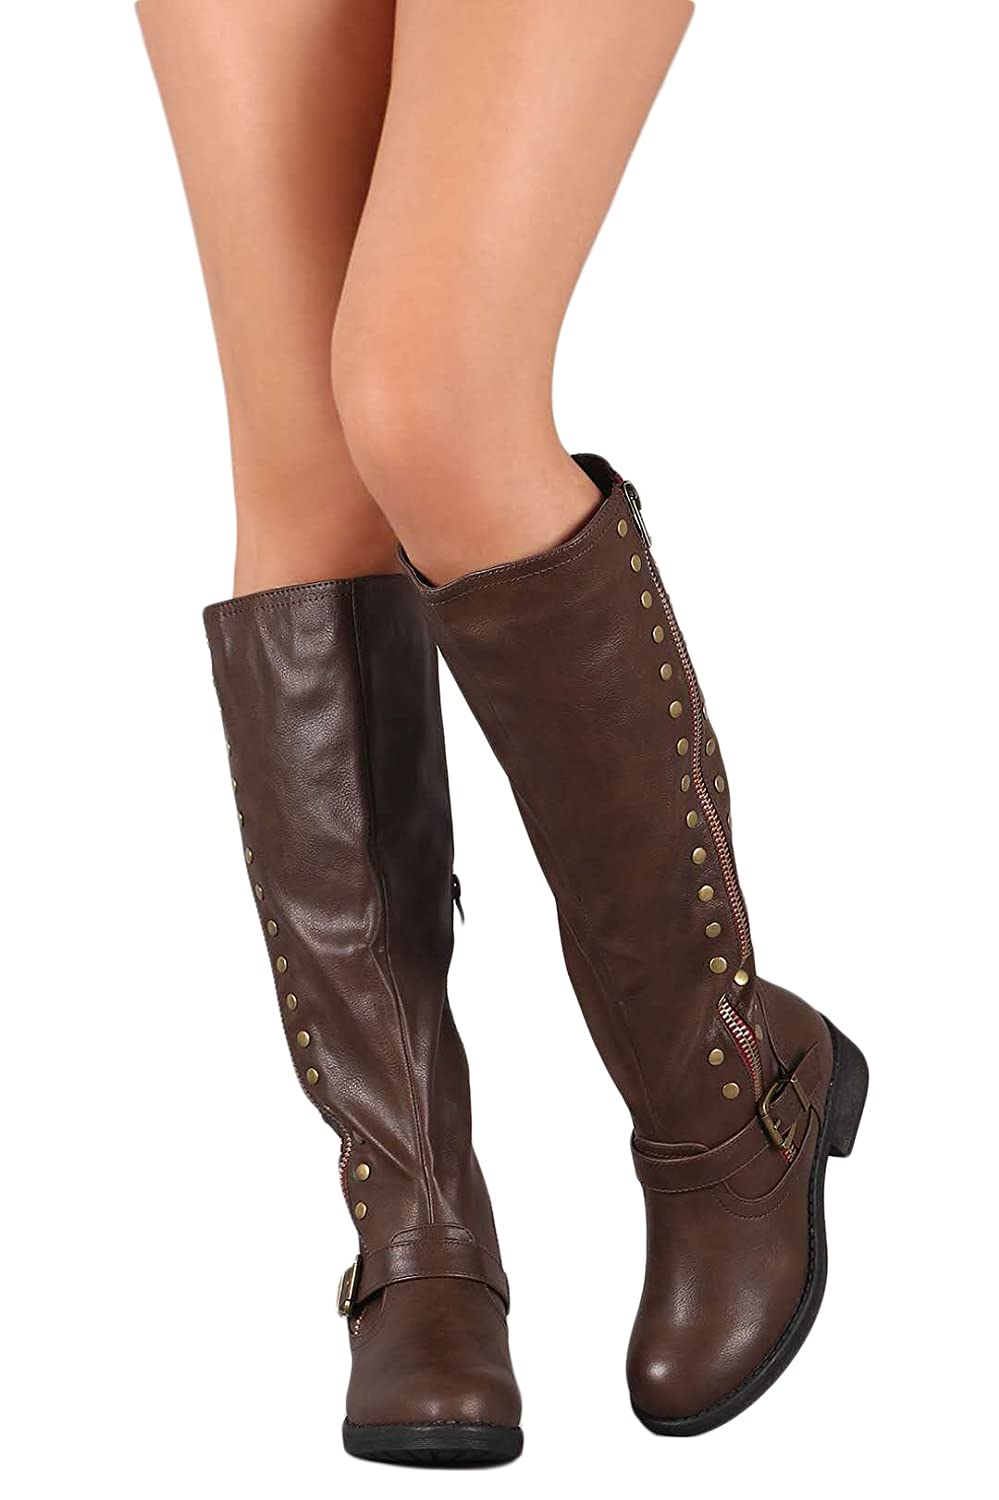 Amazon.com: Womens over La Rodilla Botas Cuff plegable ...